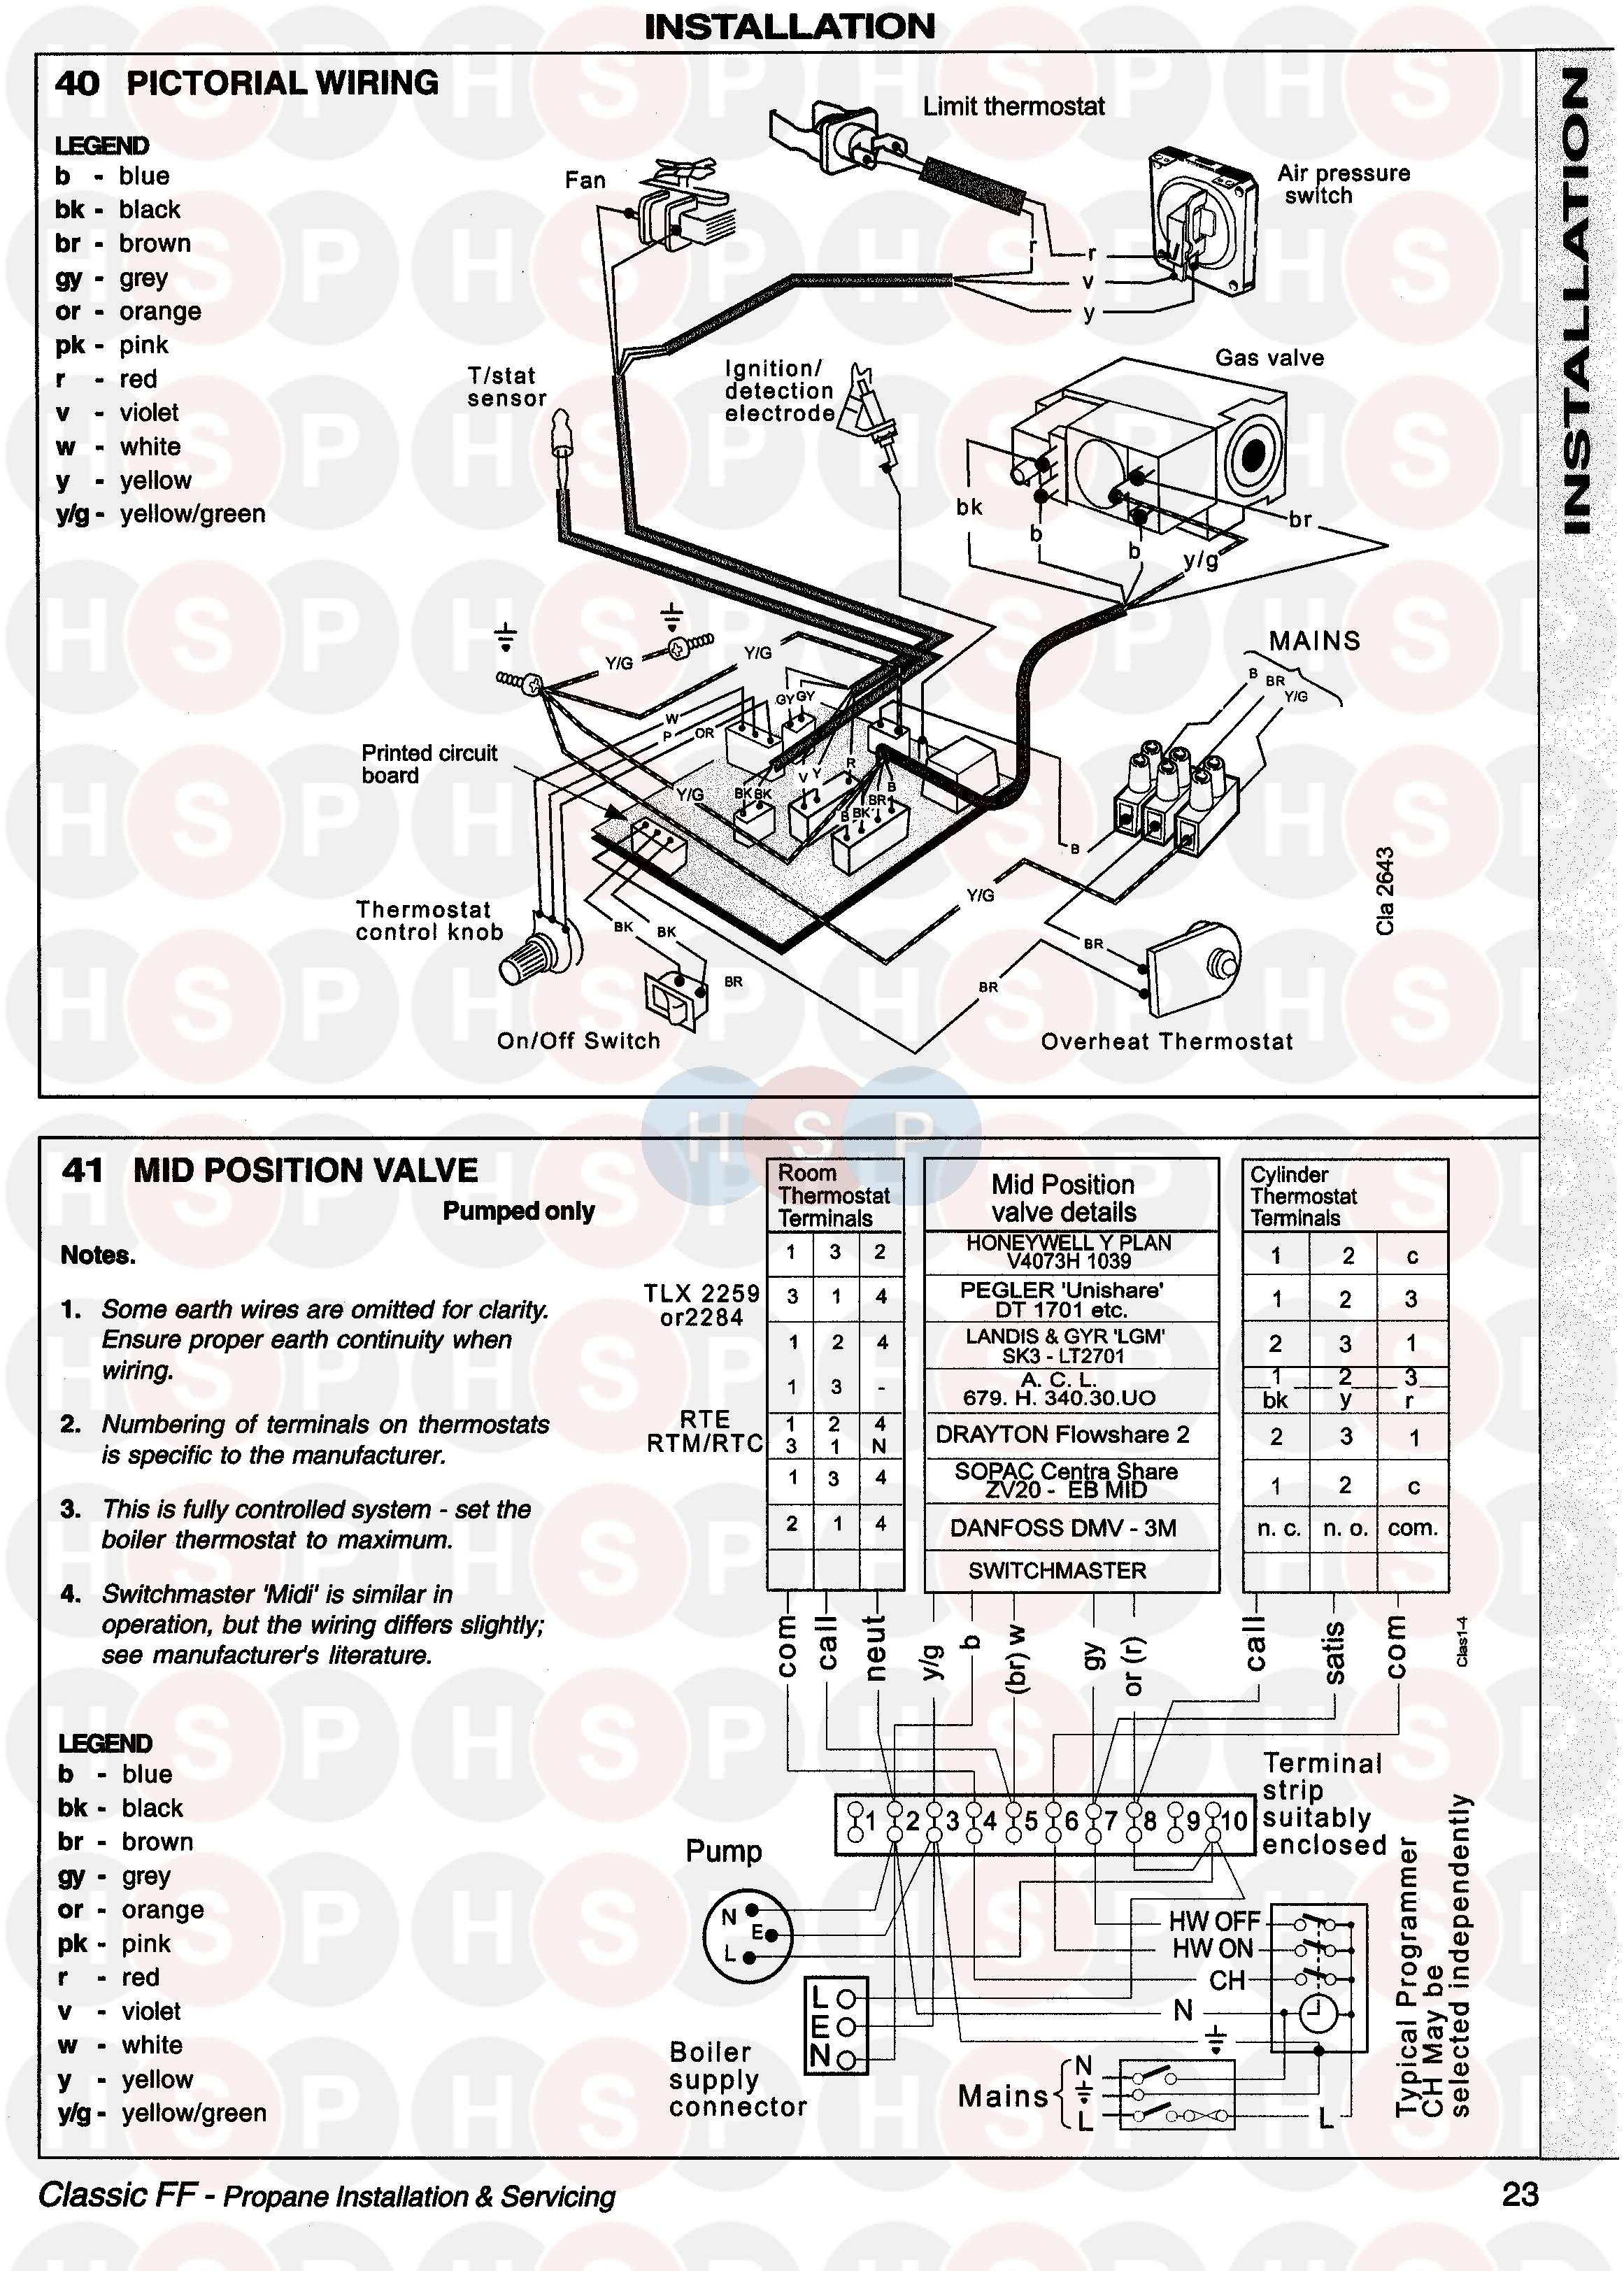 ideal classic ff 380p  wiring 2  diagram